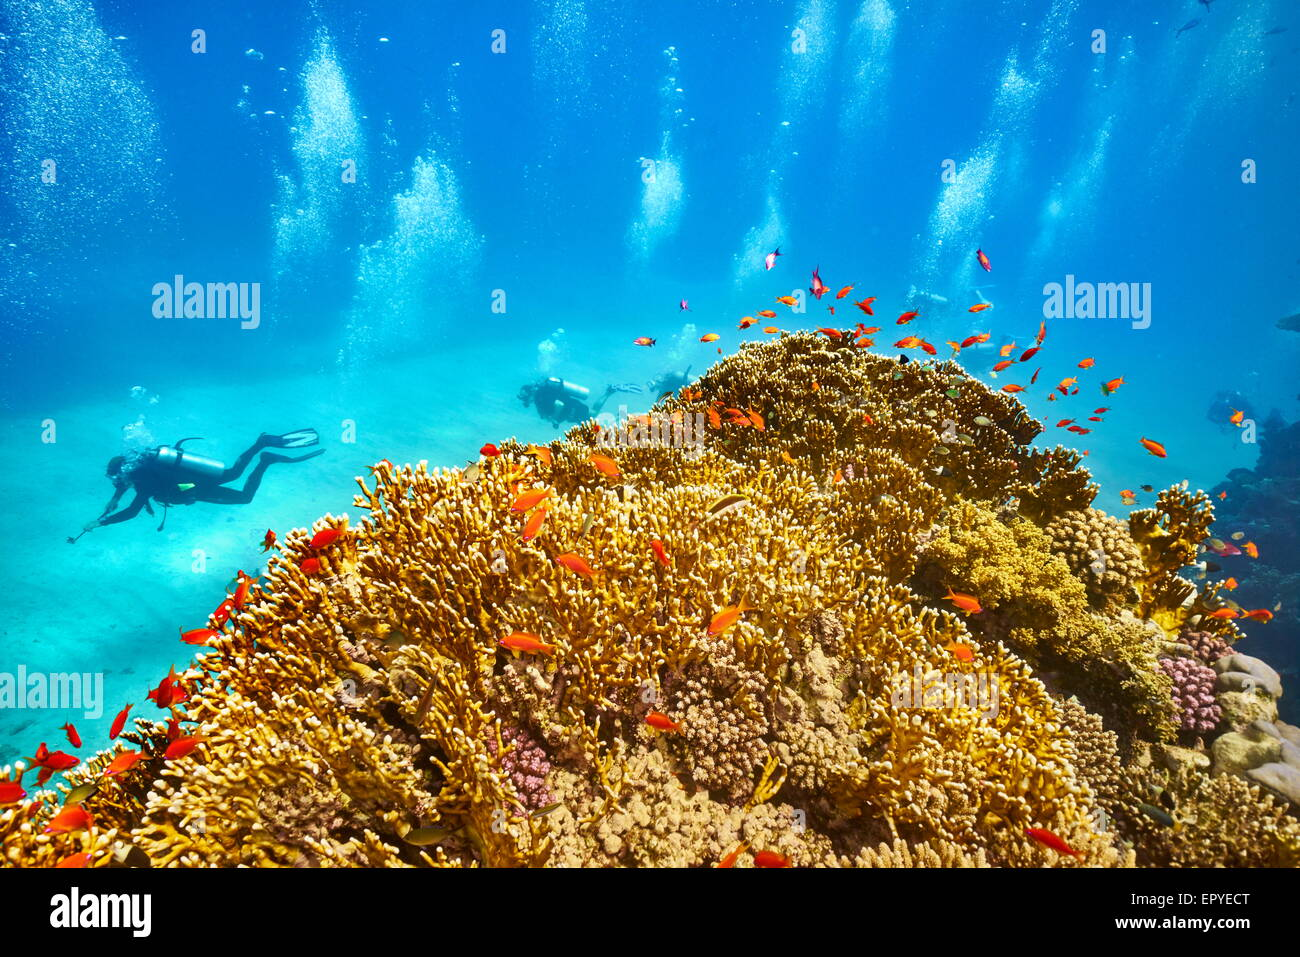 Marsa Alam, Red Sea - underwater view at scuba divers and the reef Stock Photo